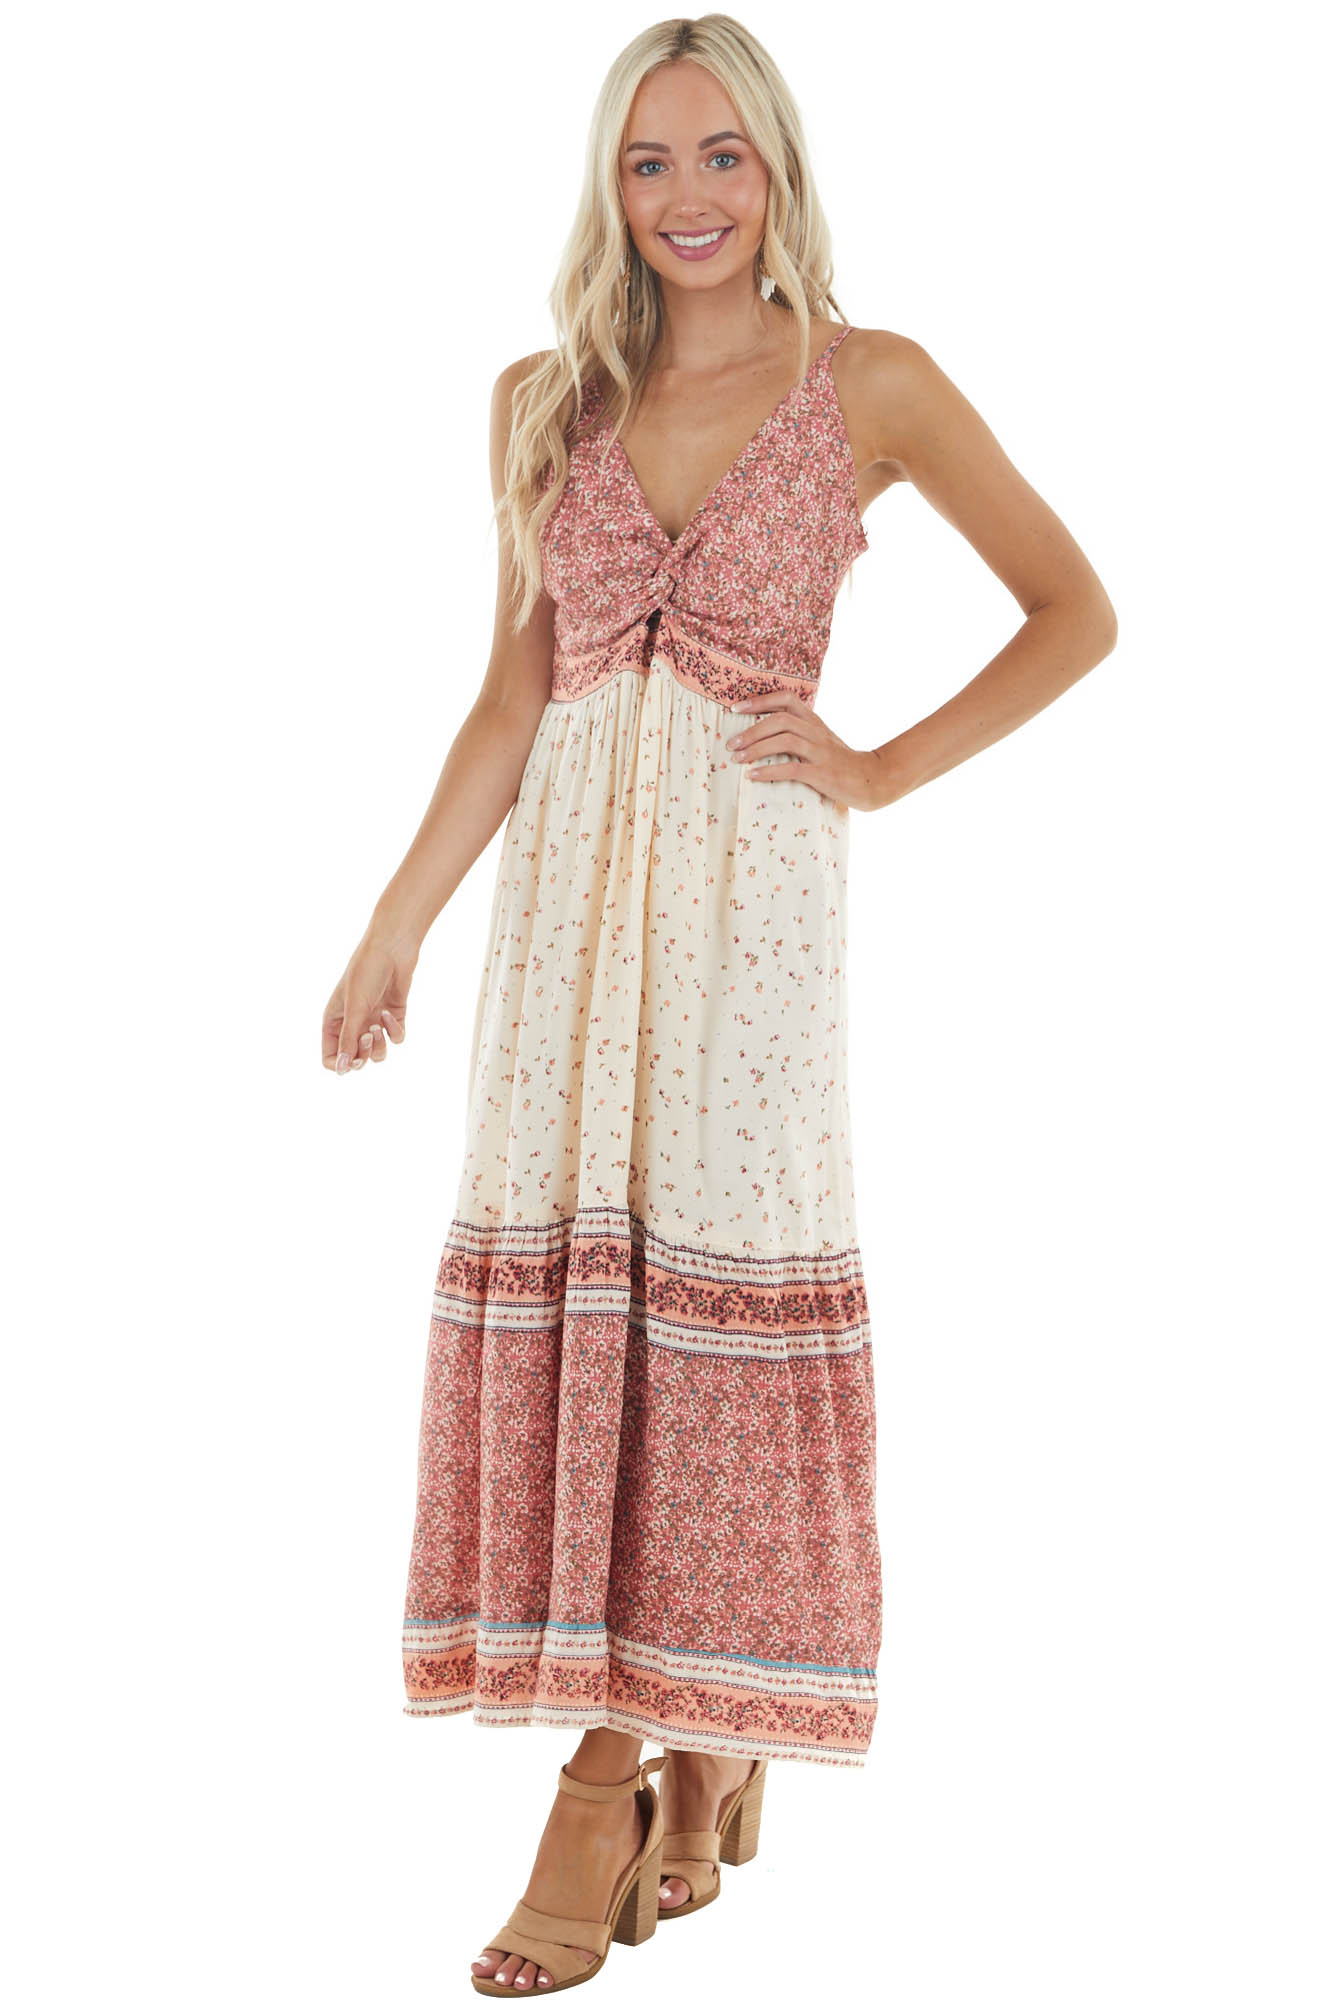 Dusty Rose and Desert Sand Floral Print Woven Maxi Dress